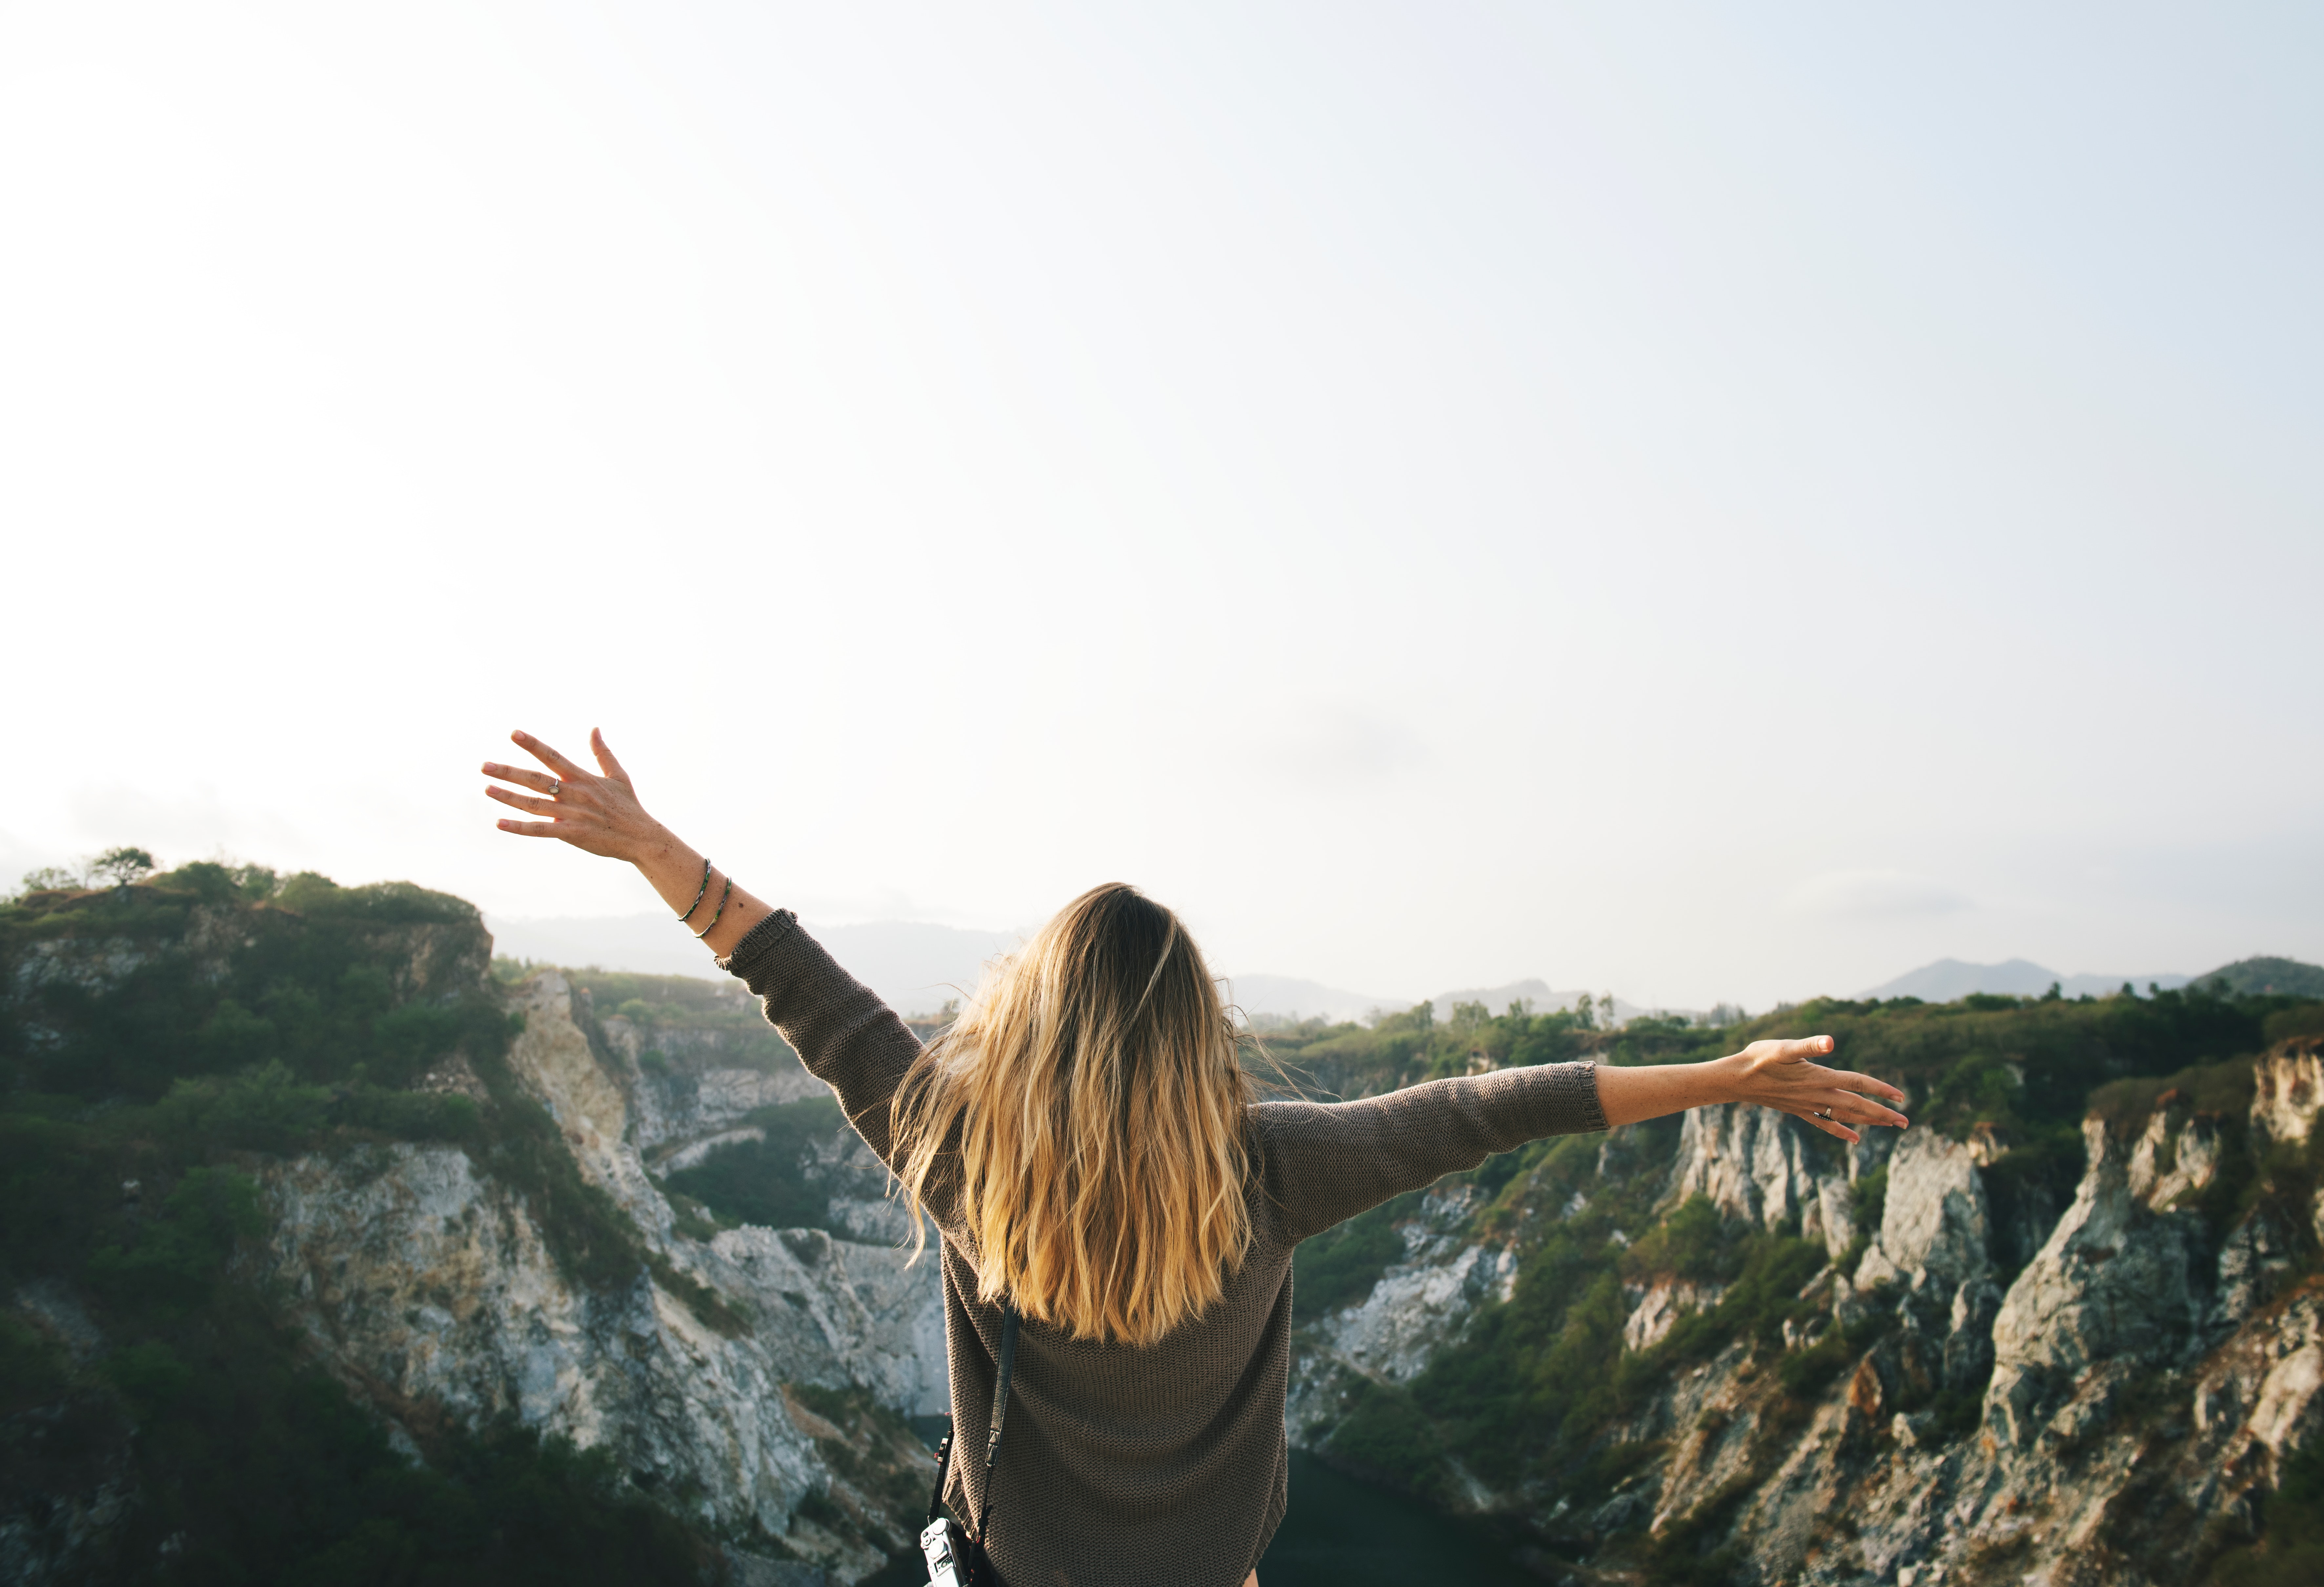 Woman with blonde hair at the top of the mountain raising her hands photo